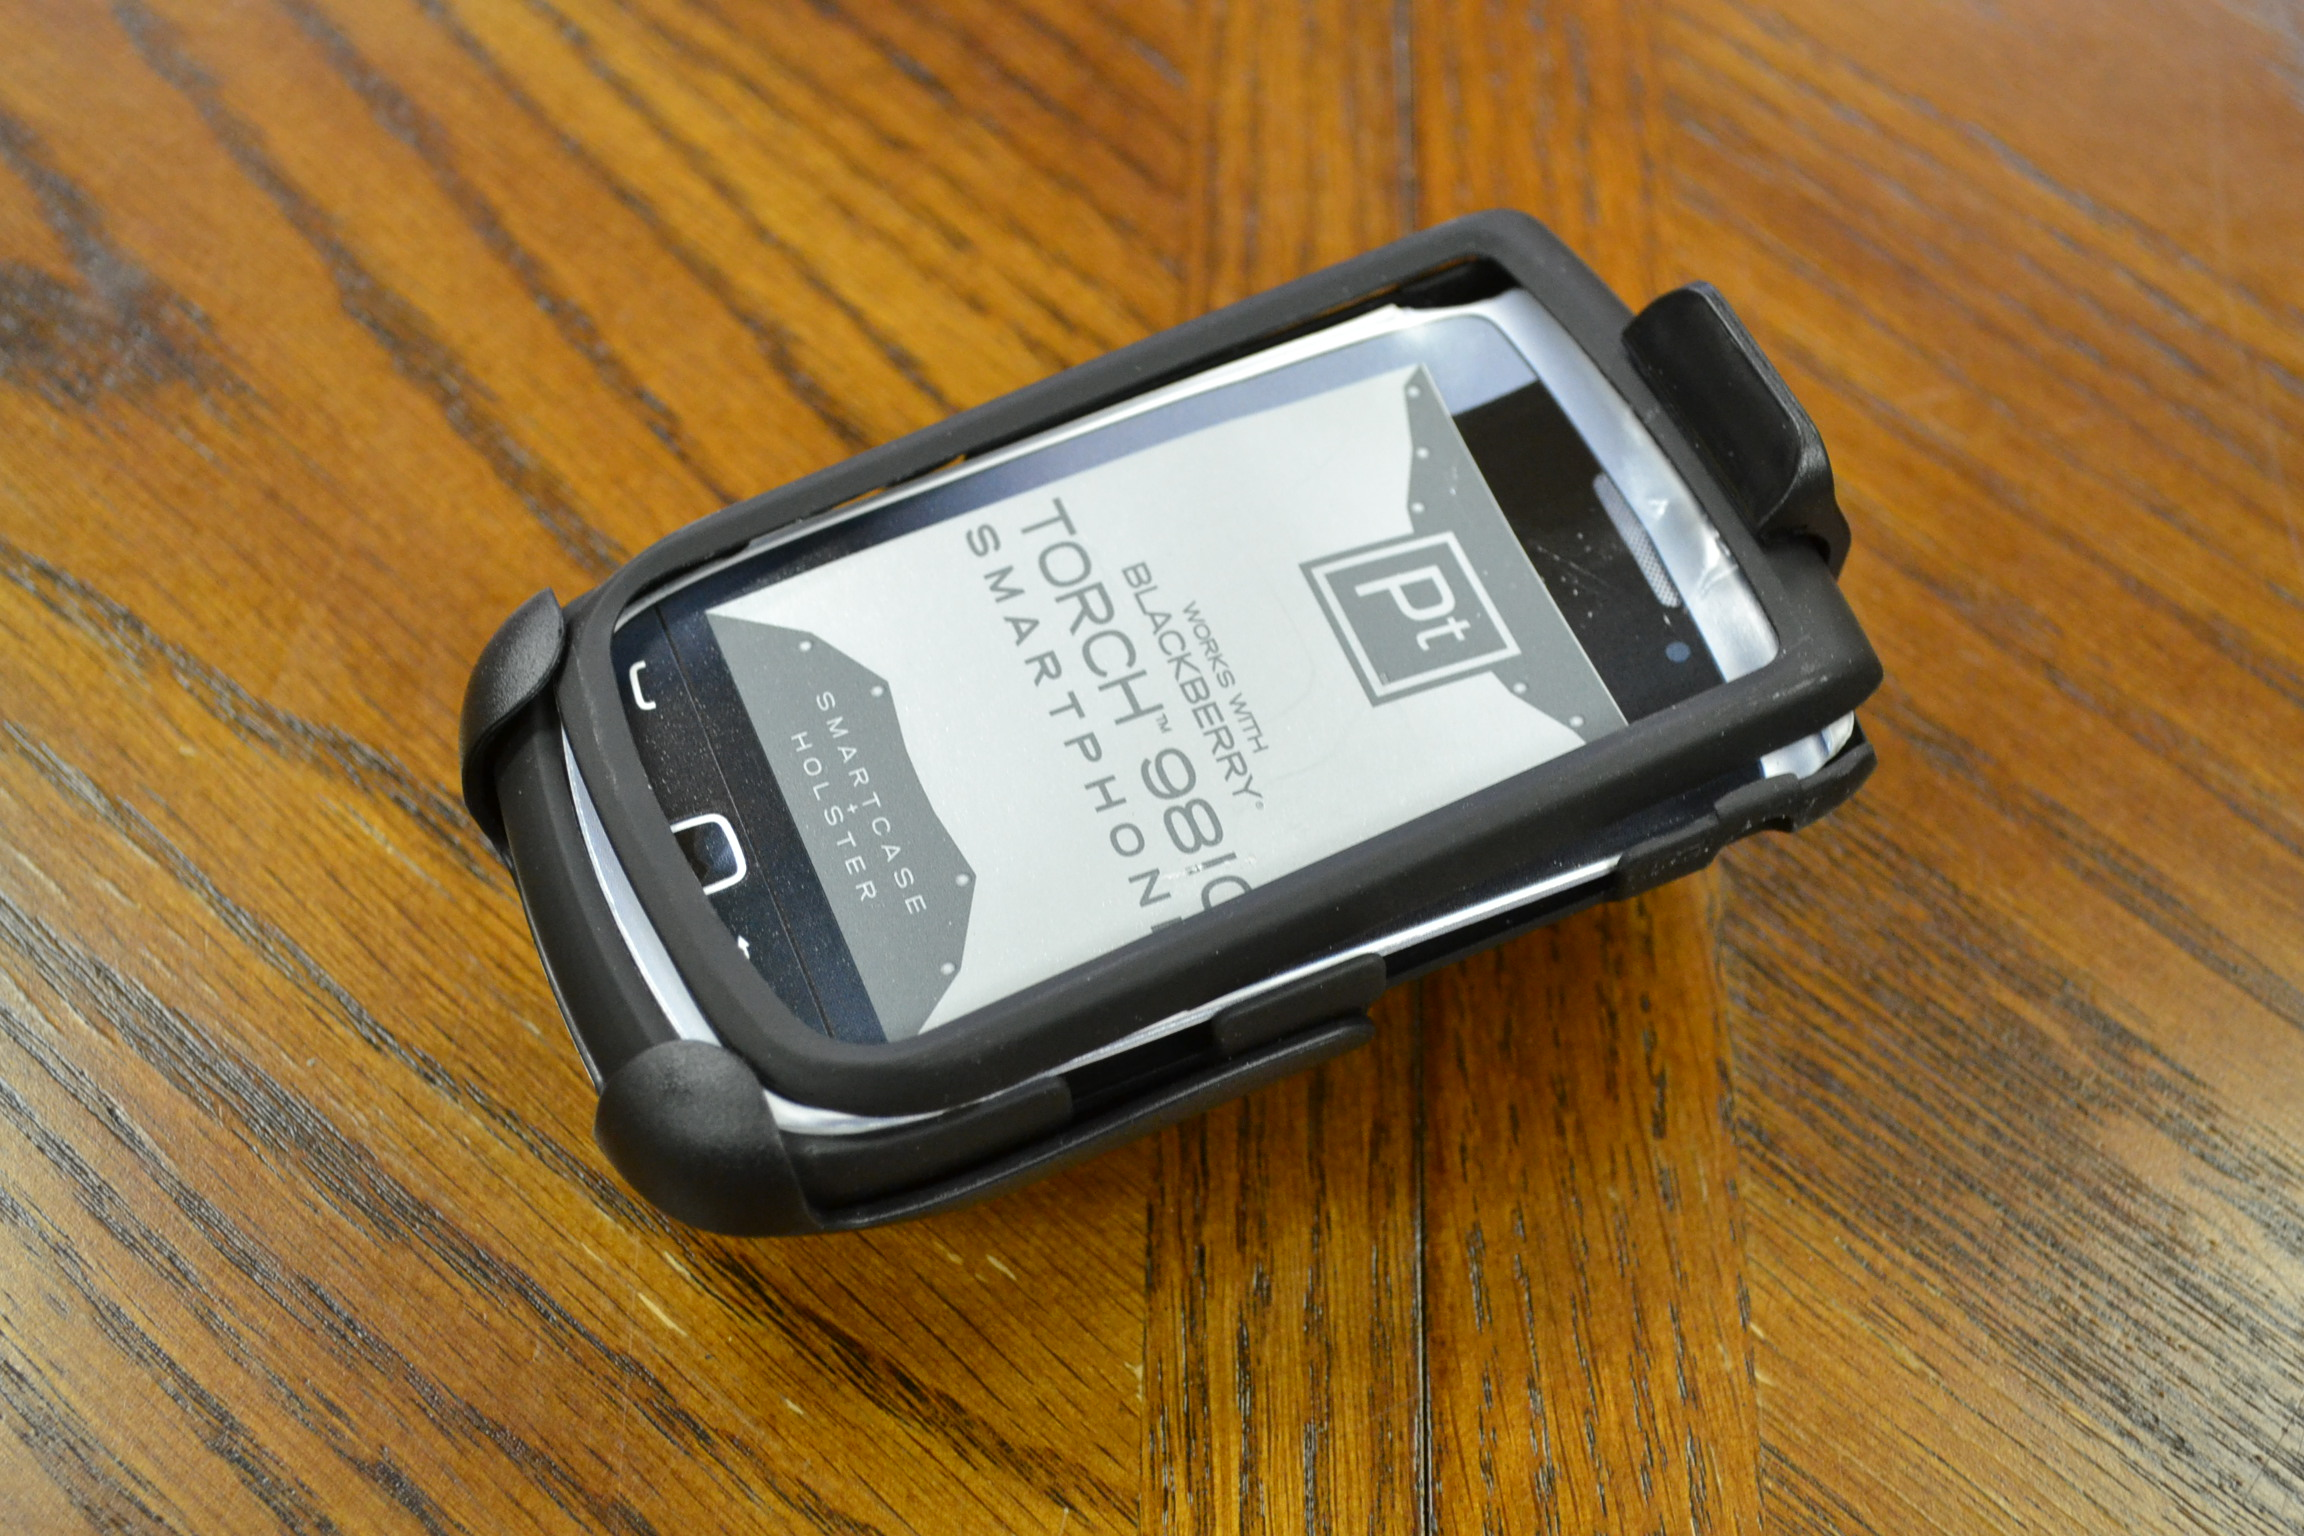 BlackBerry Cell Phones & Accessories